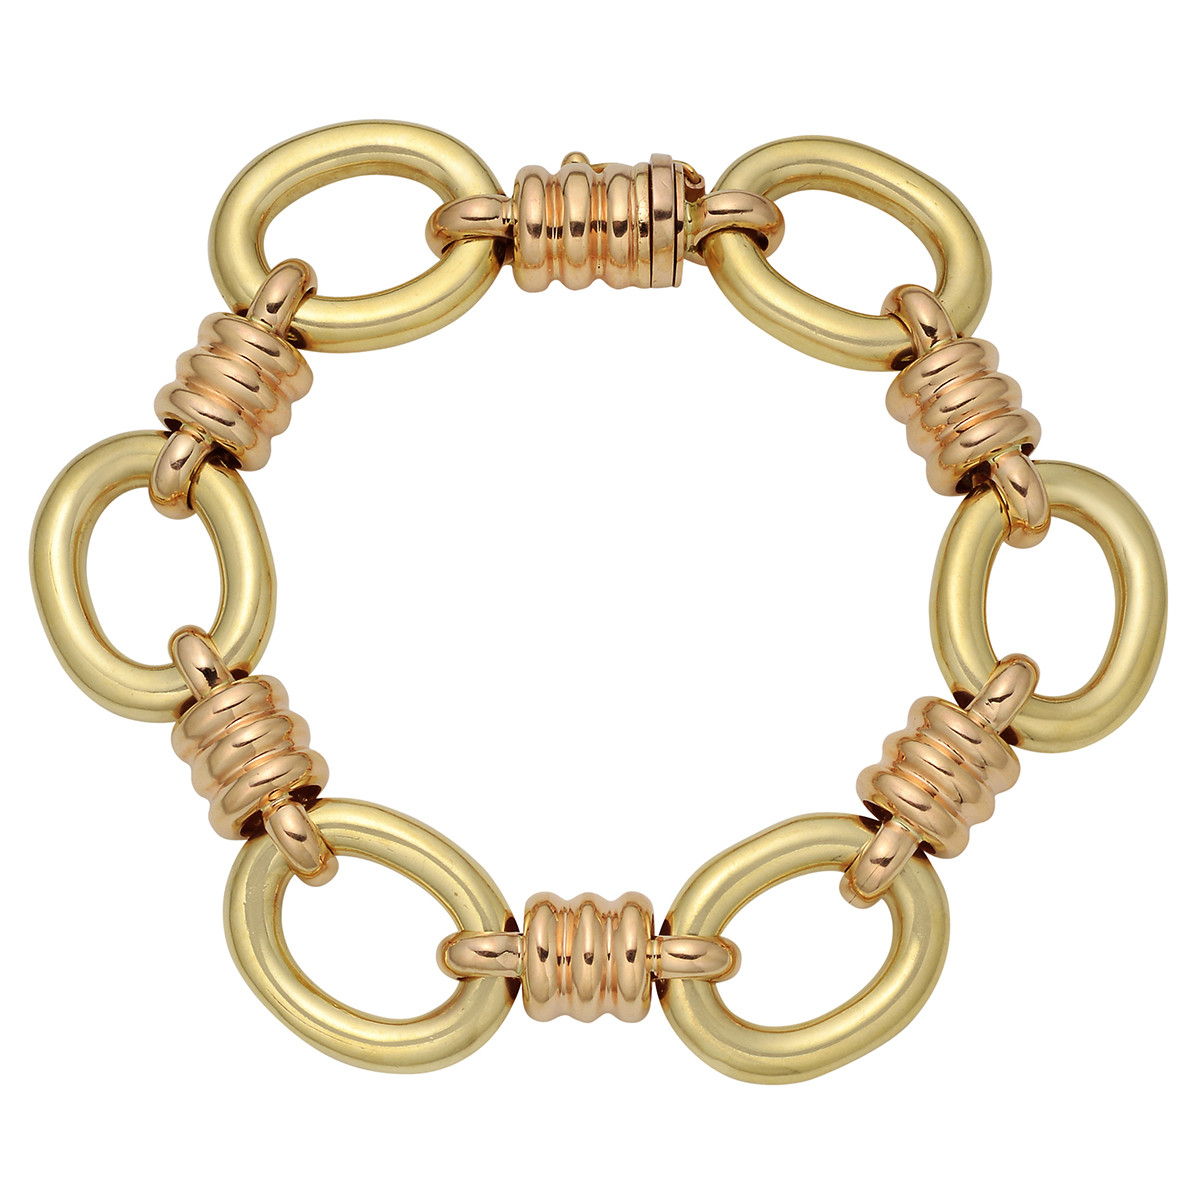 18k Yellow & Pink Gold Oval & Coil Link Bracelet